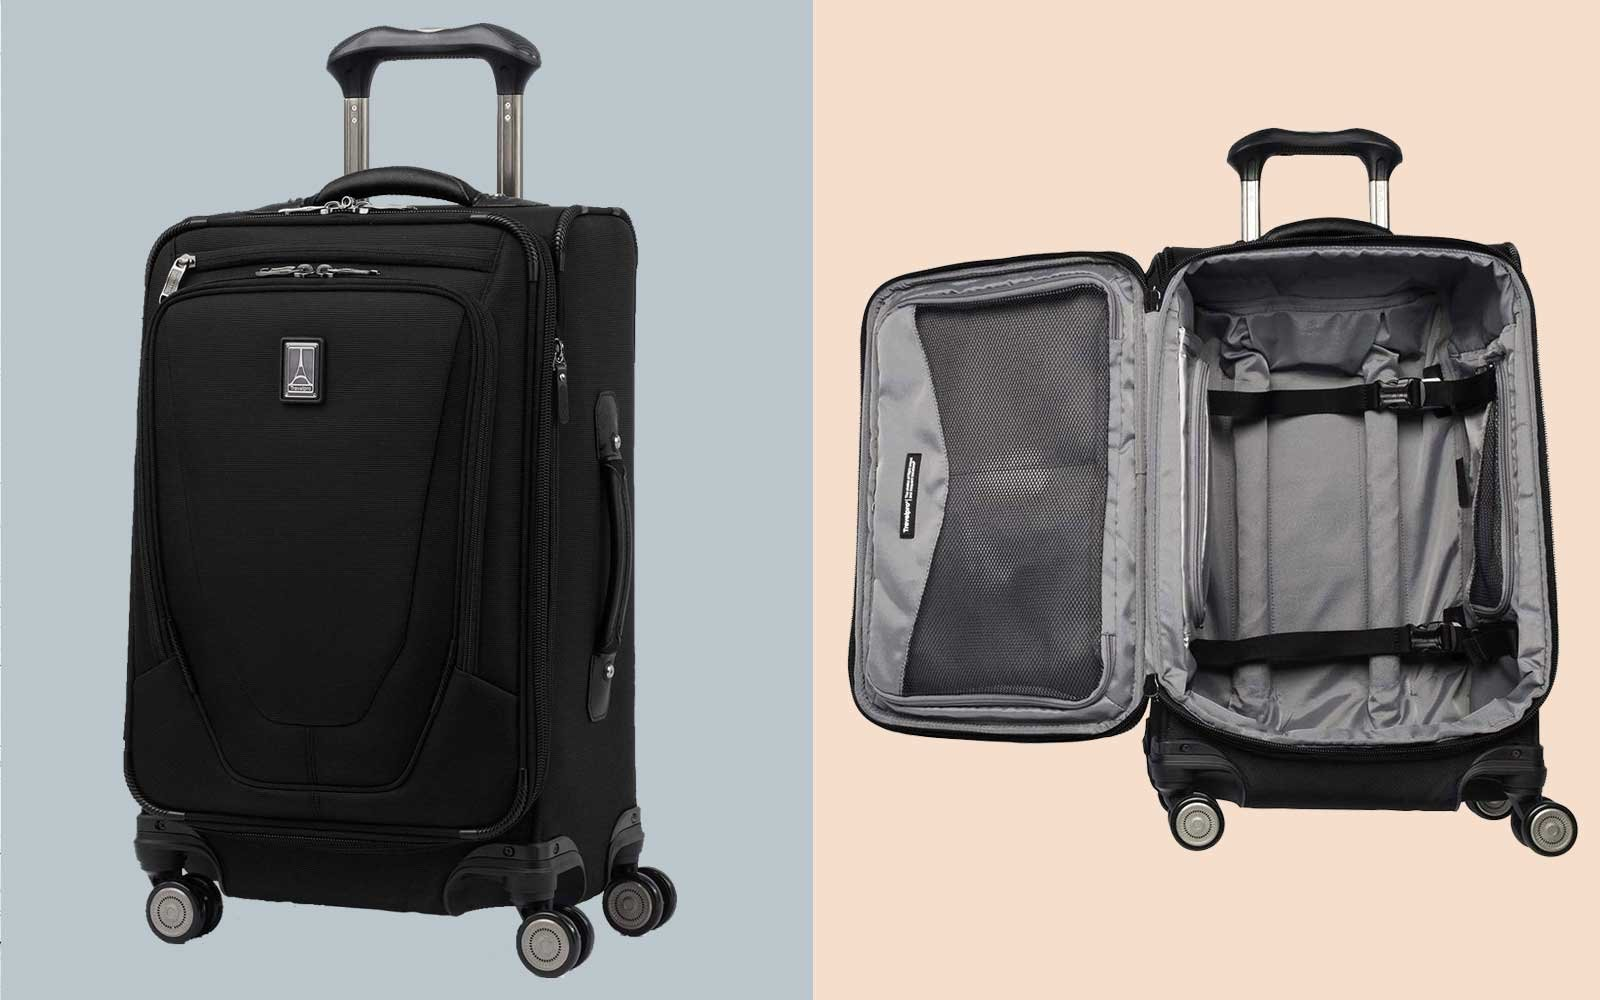 Travelpro Black Softside Suitcase